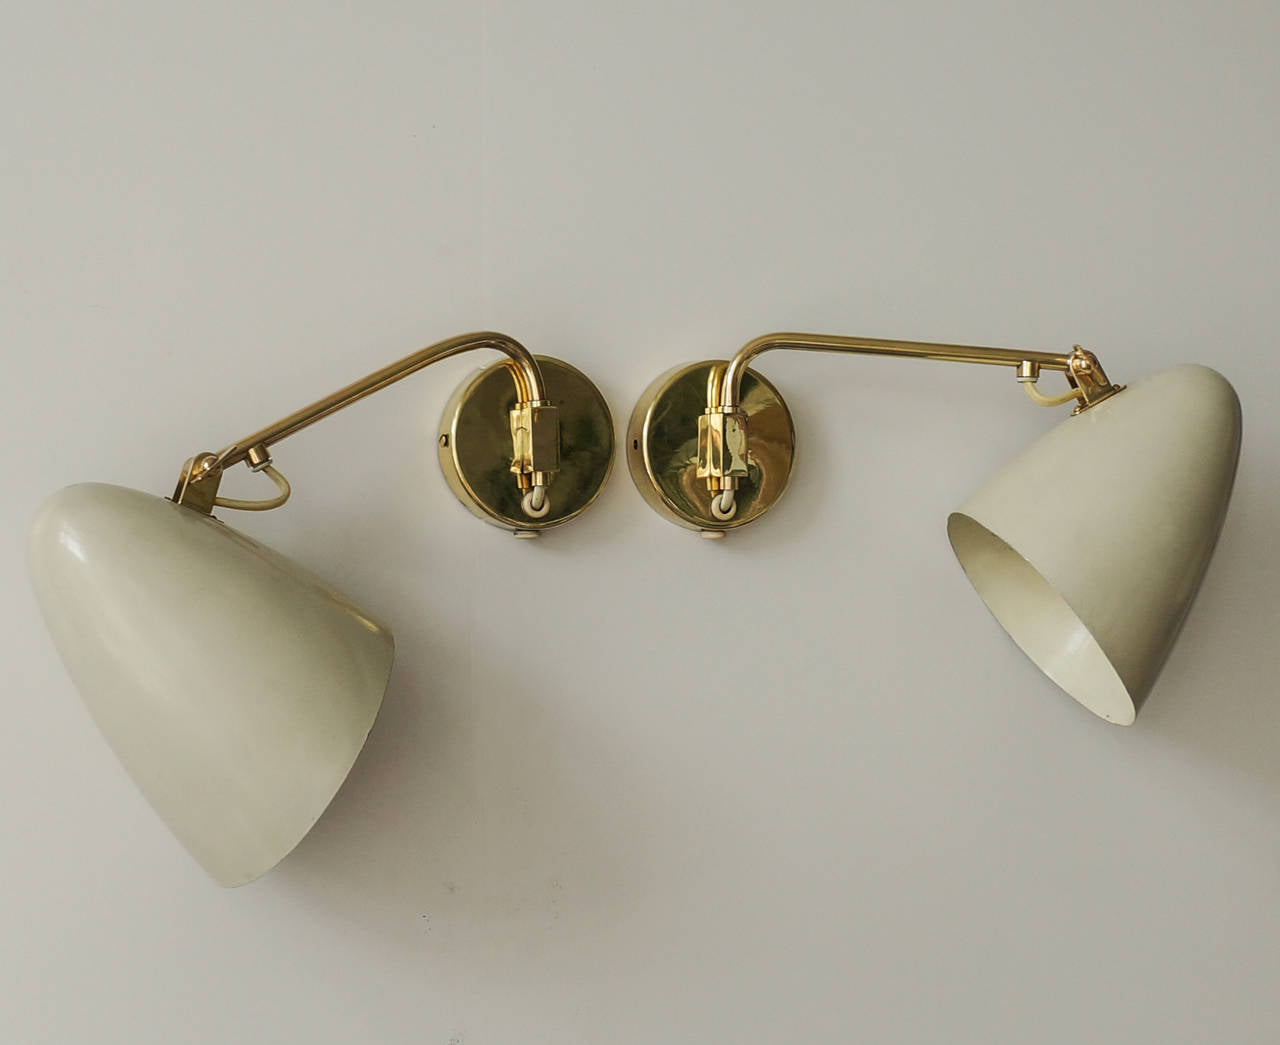 Paavo Tynell, Pair of Adjustable Sconces, Idman Oy, 1950s - The Exchange Int